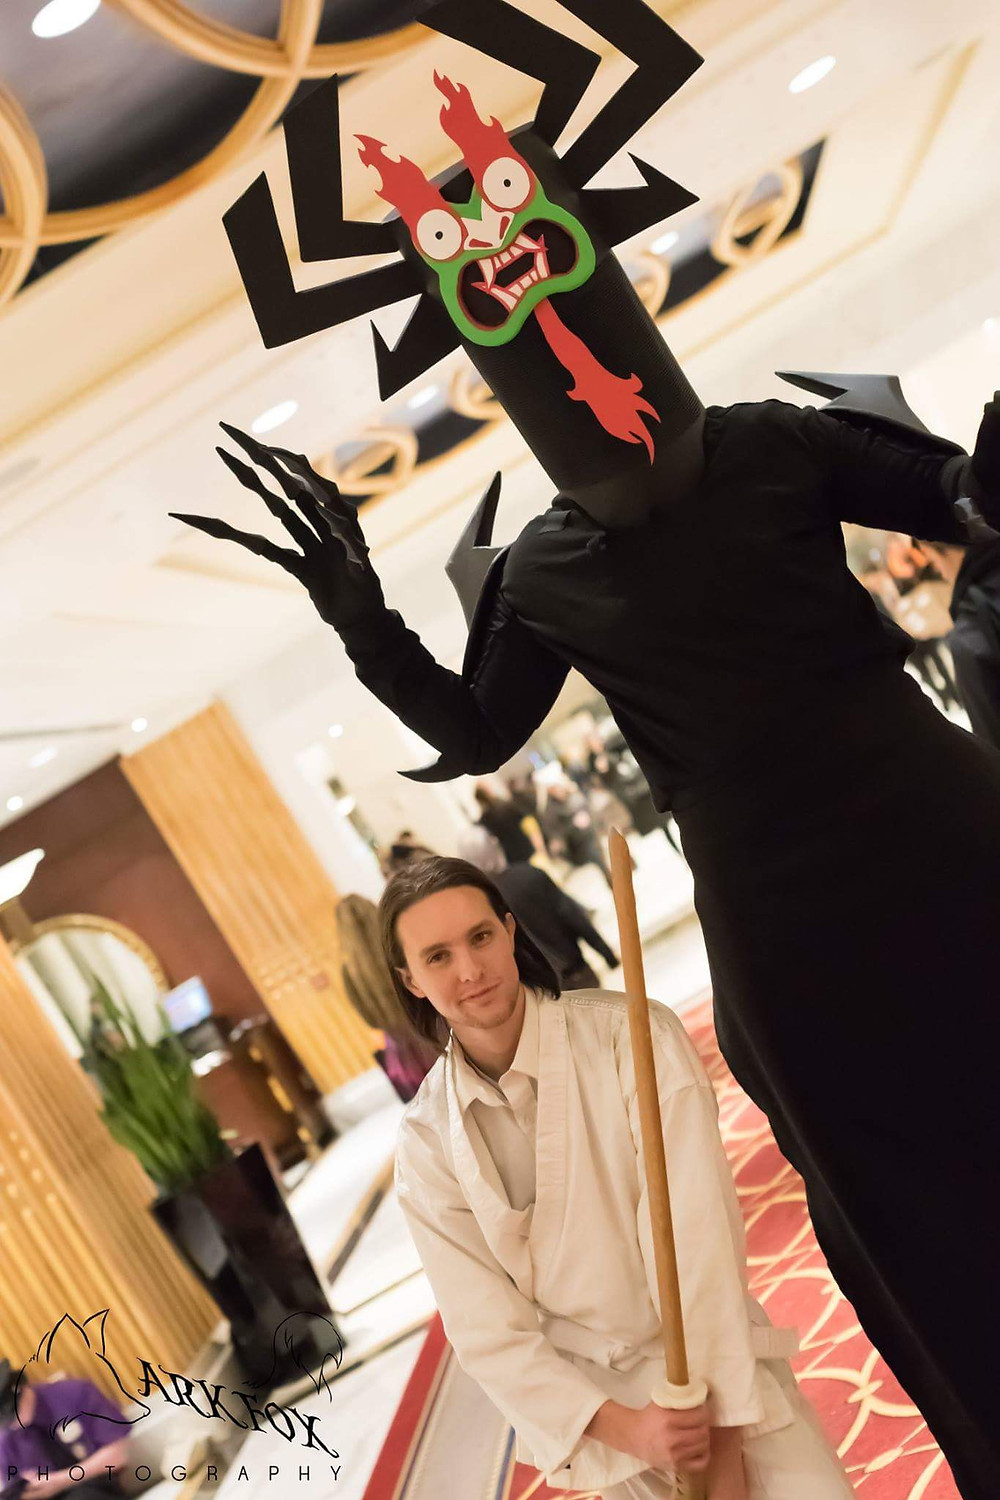 Two men in cosplay, one is aku from Samurai Jack and the other is Samurai Jack